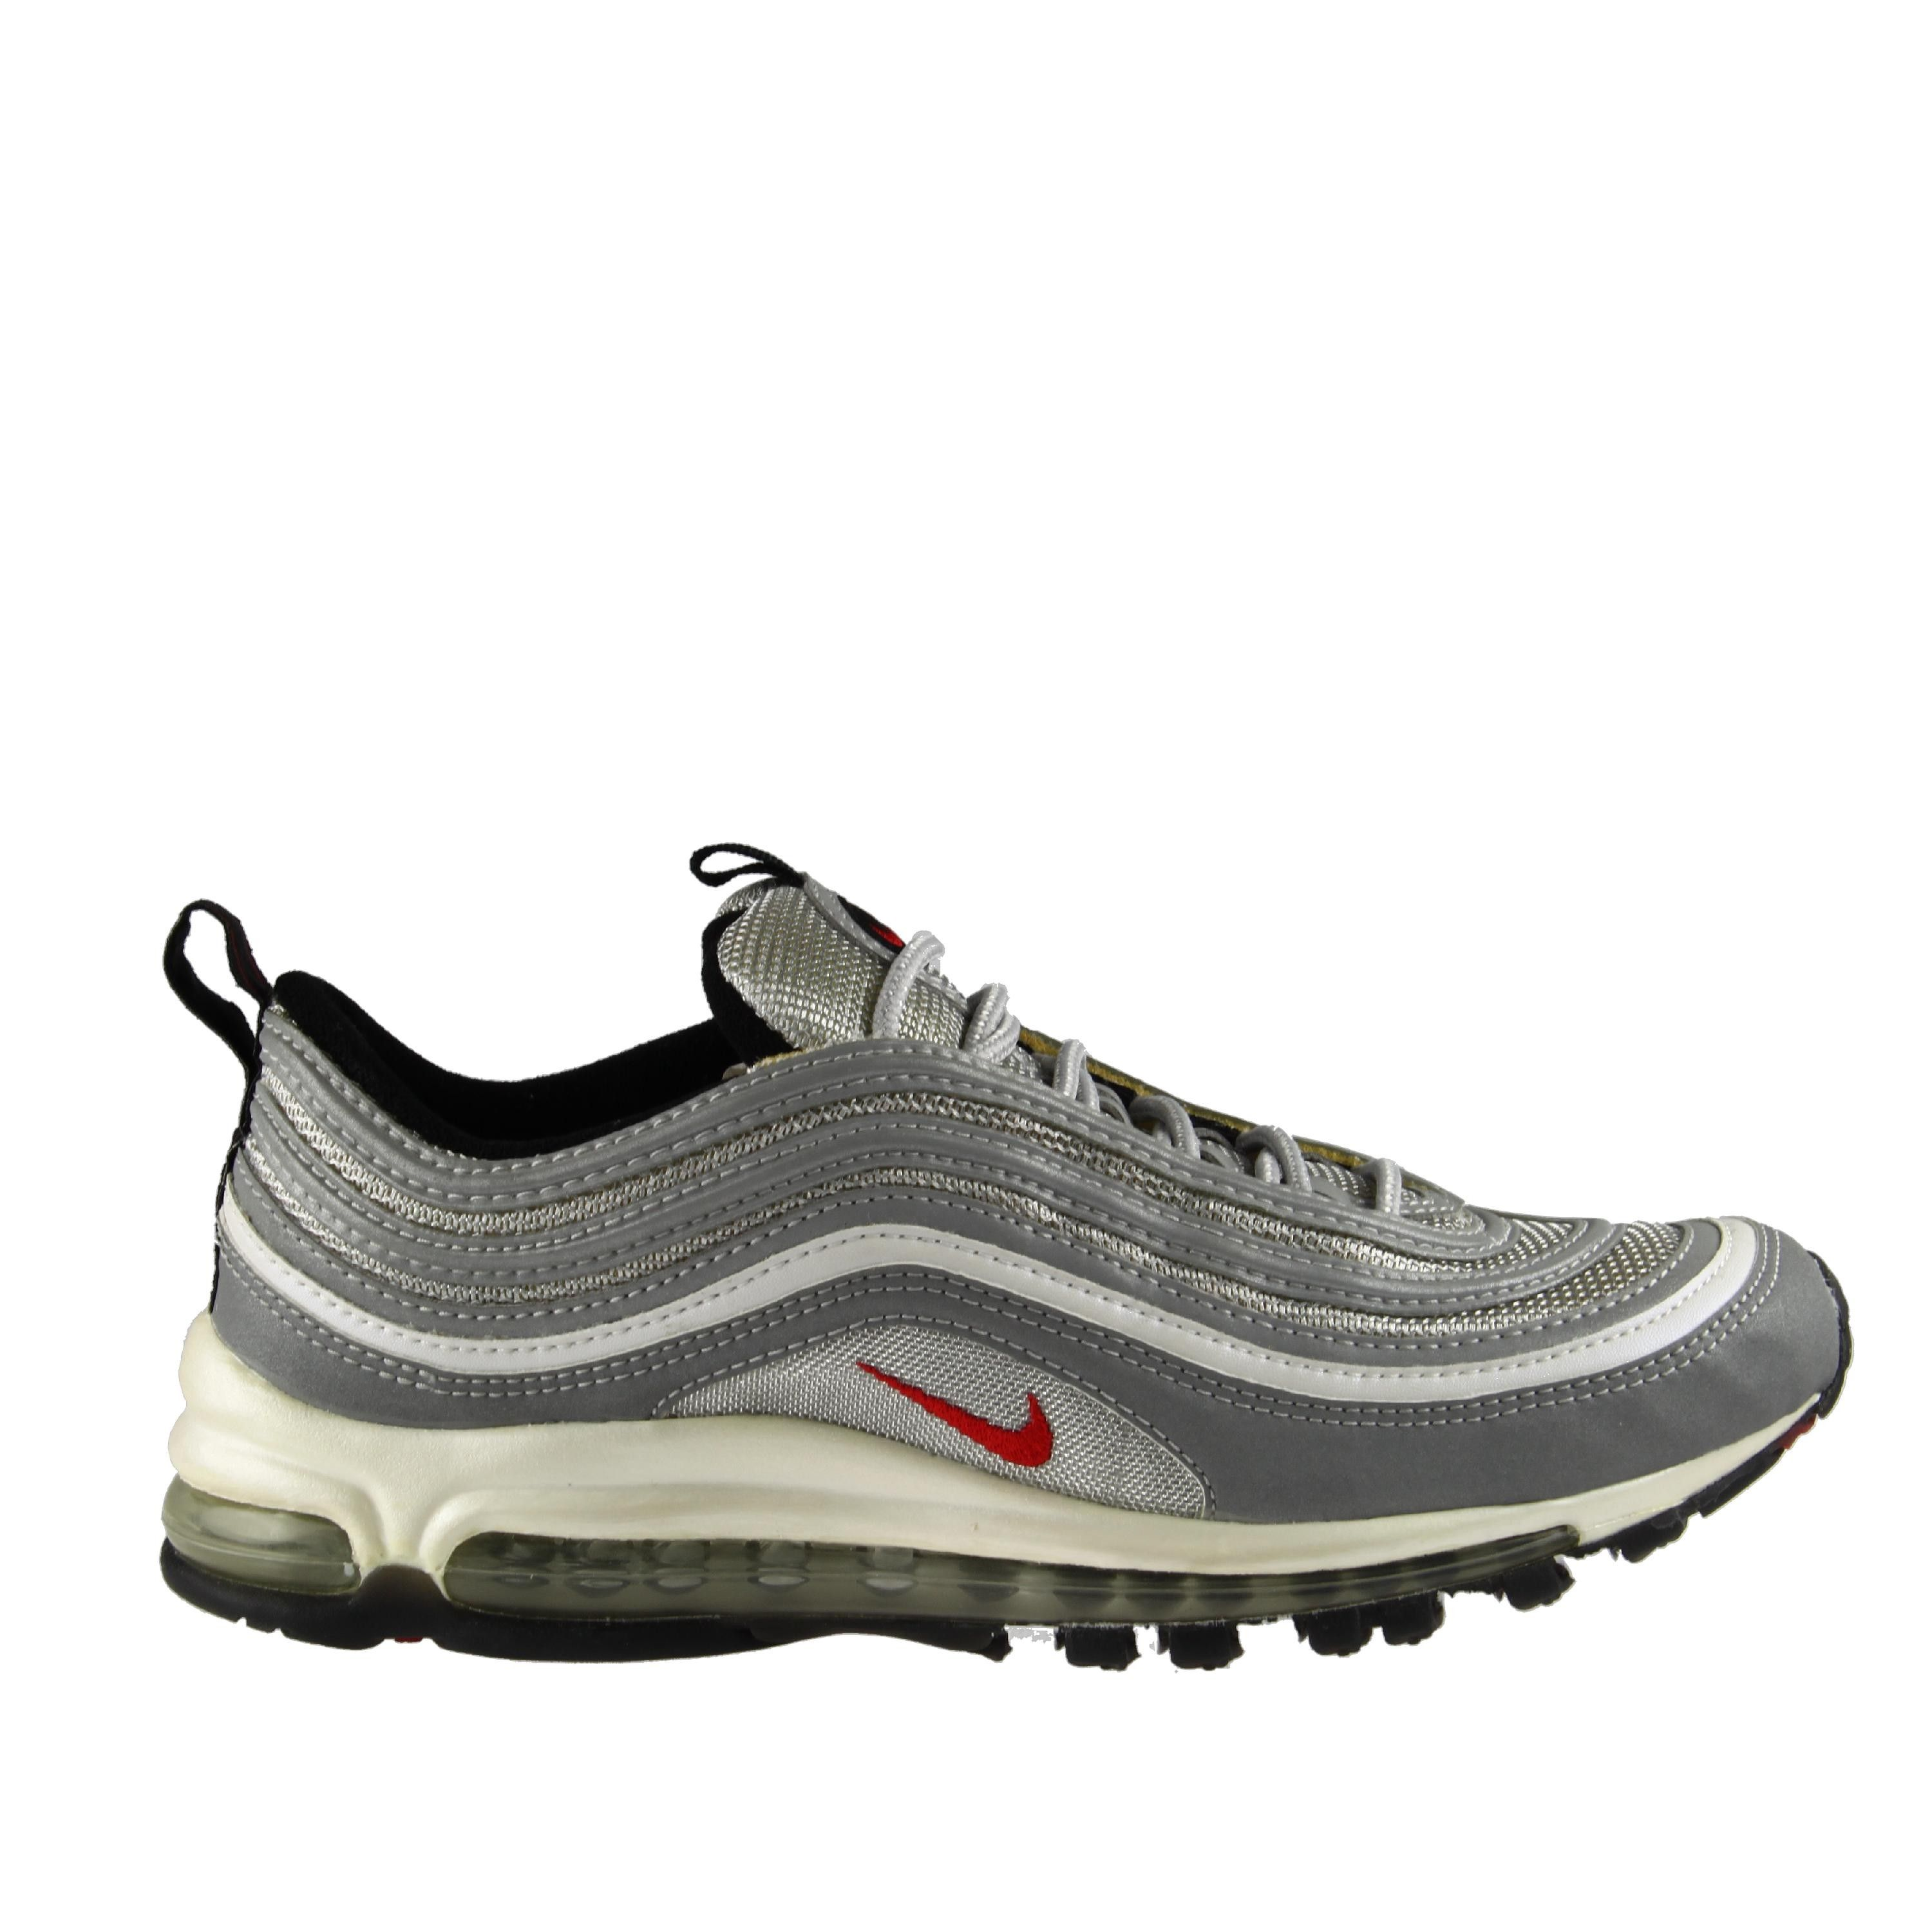 nike air max 97 low cost